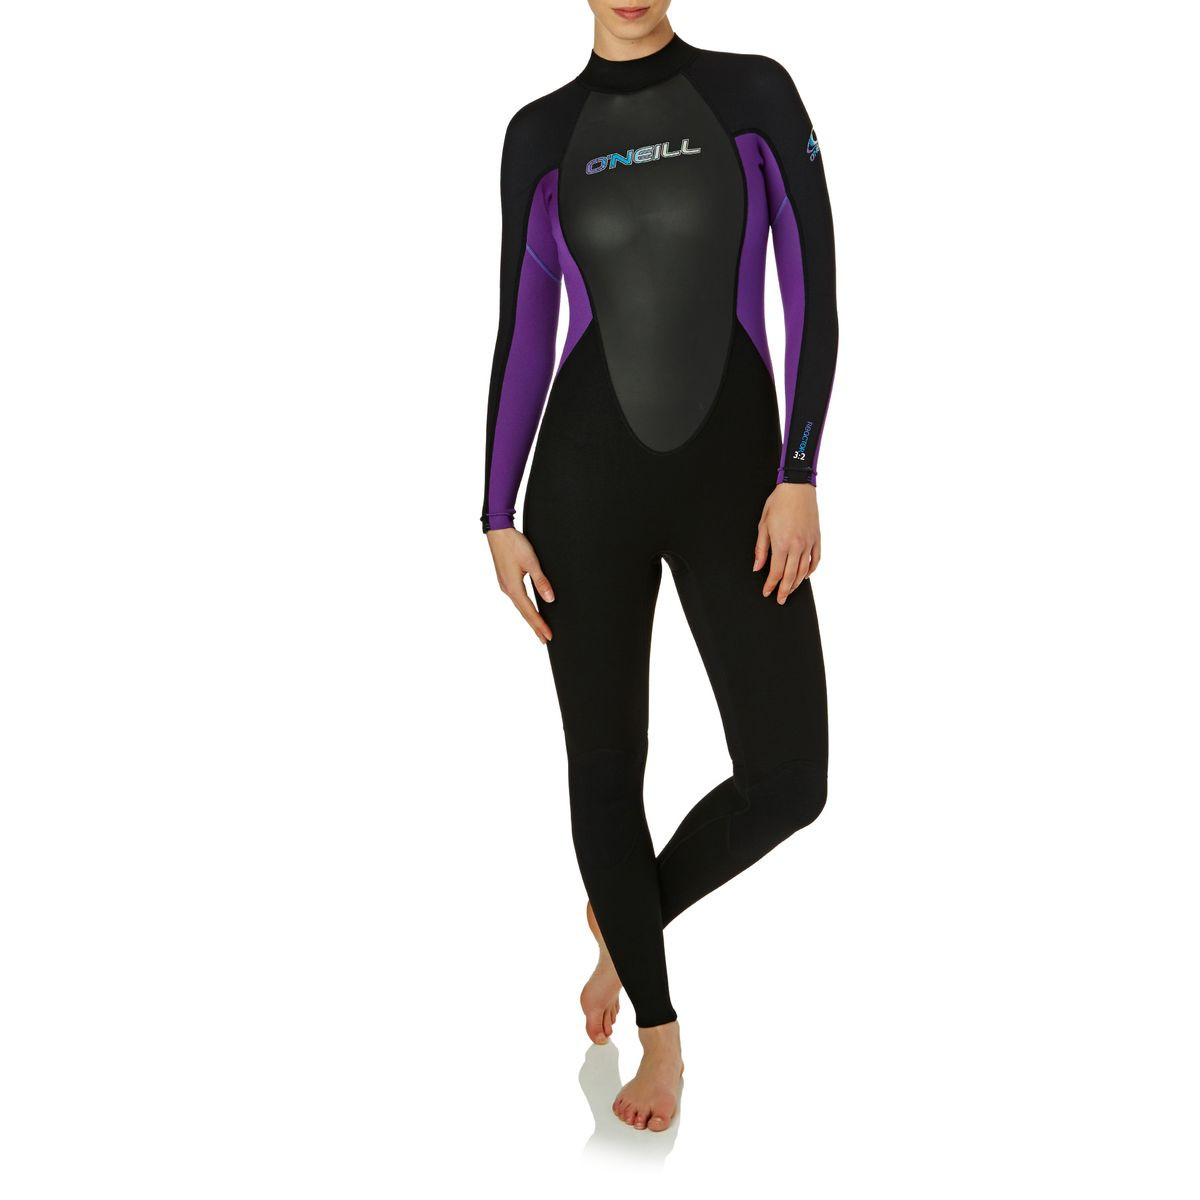 O'Neill Womens Reactor 3/2mm 2017 Back Zip Wetsuit - Black/ Black/ Ultraviolet